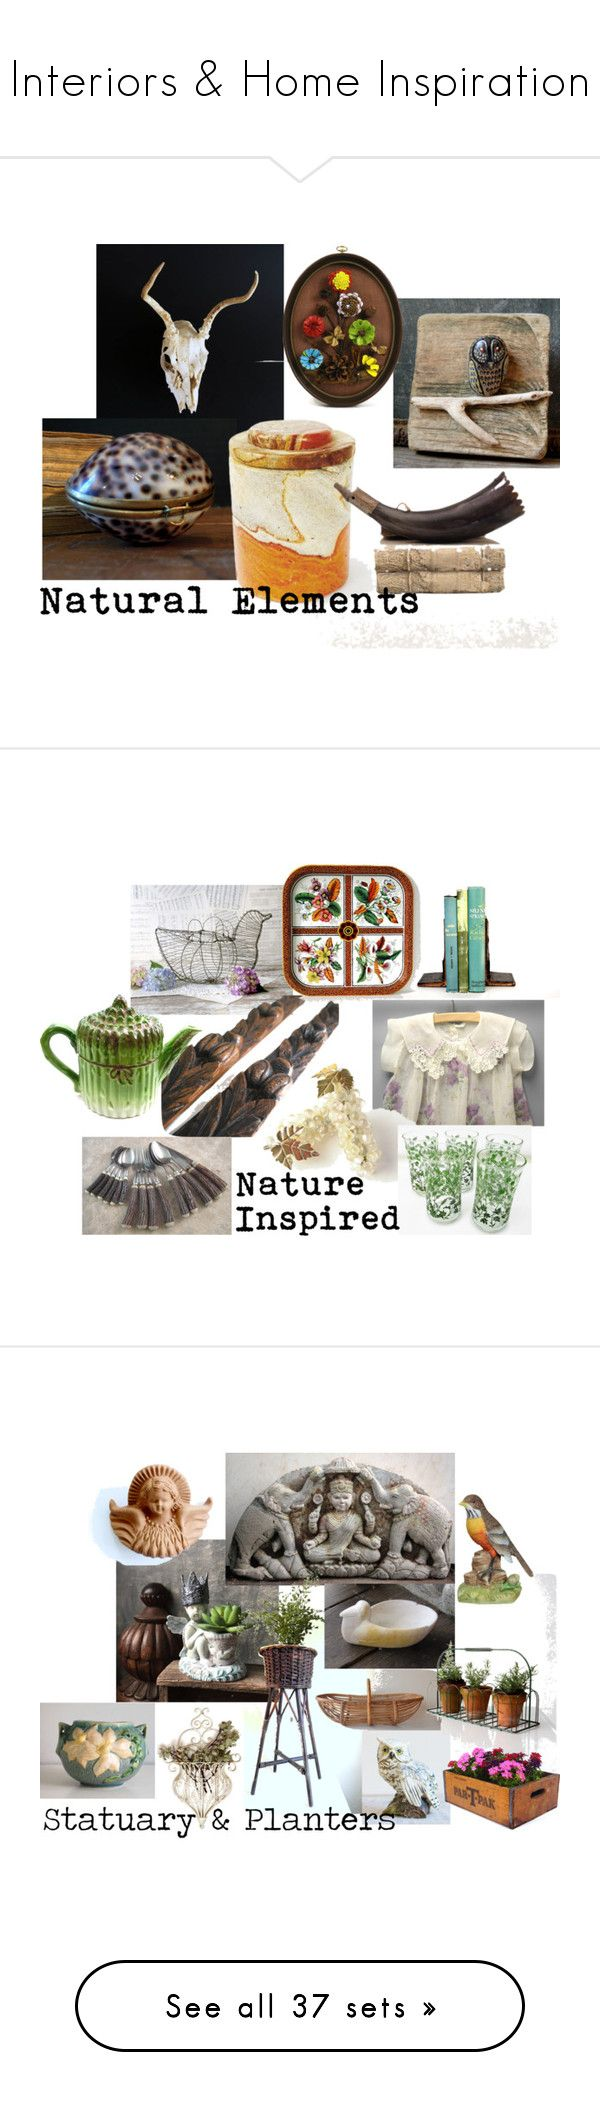 Interiors & Home Inspiration by gazaboovintage on Polyvore featuring polyvore interior interiors interior design home home decor interior decorating vintage VintageAndMain easter home decor bird home decor wire home decor nature figurine vintage porcelain vintage home accessories vintage sculpture bird sculptures porcelain bird figurines vintage porcelain figurines candles & candleholders handmade home decor wall candleholders wall mounted candle holders wall candle holders angel wing candle…